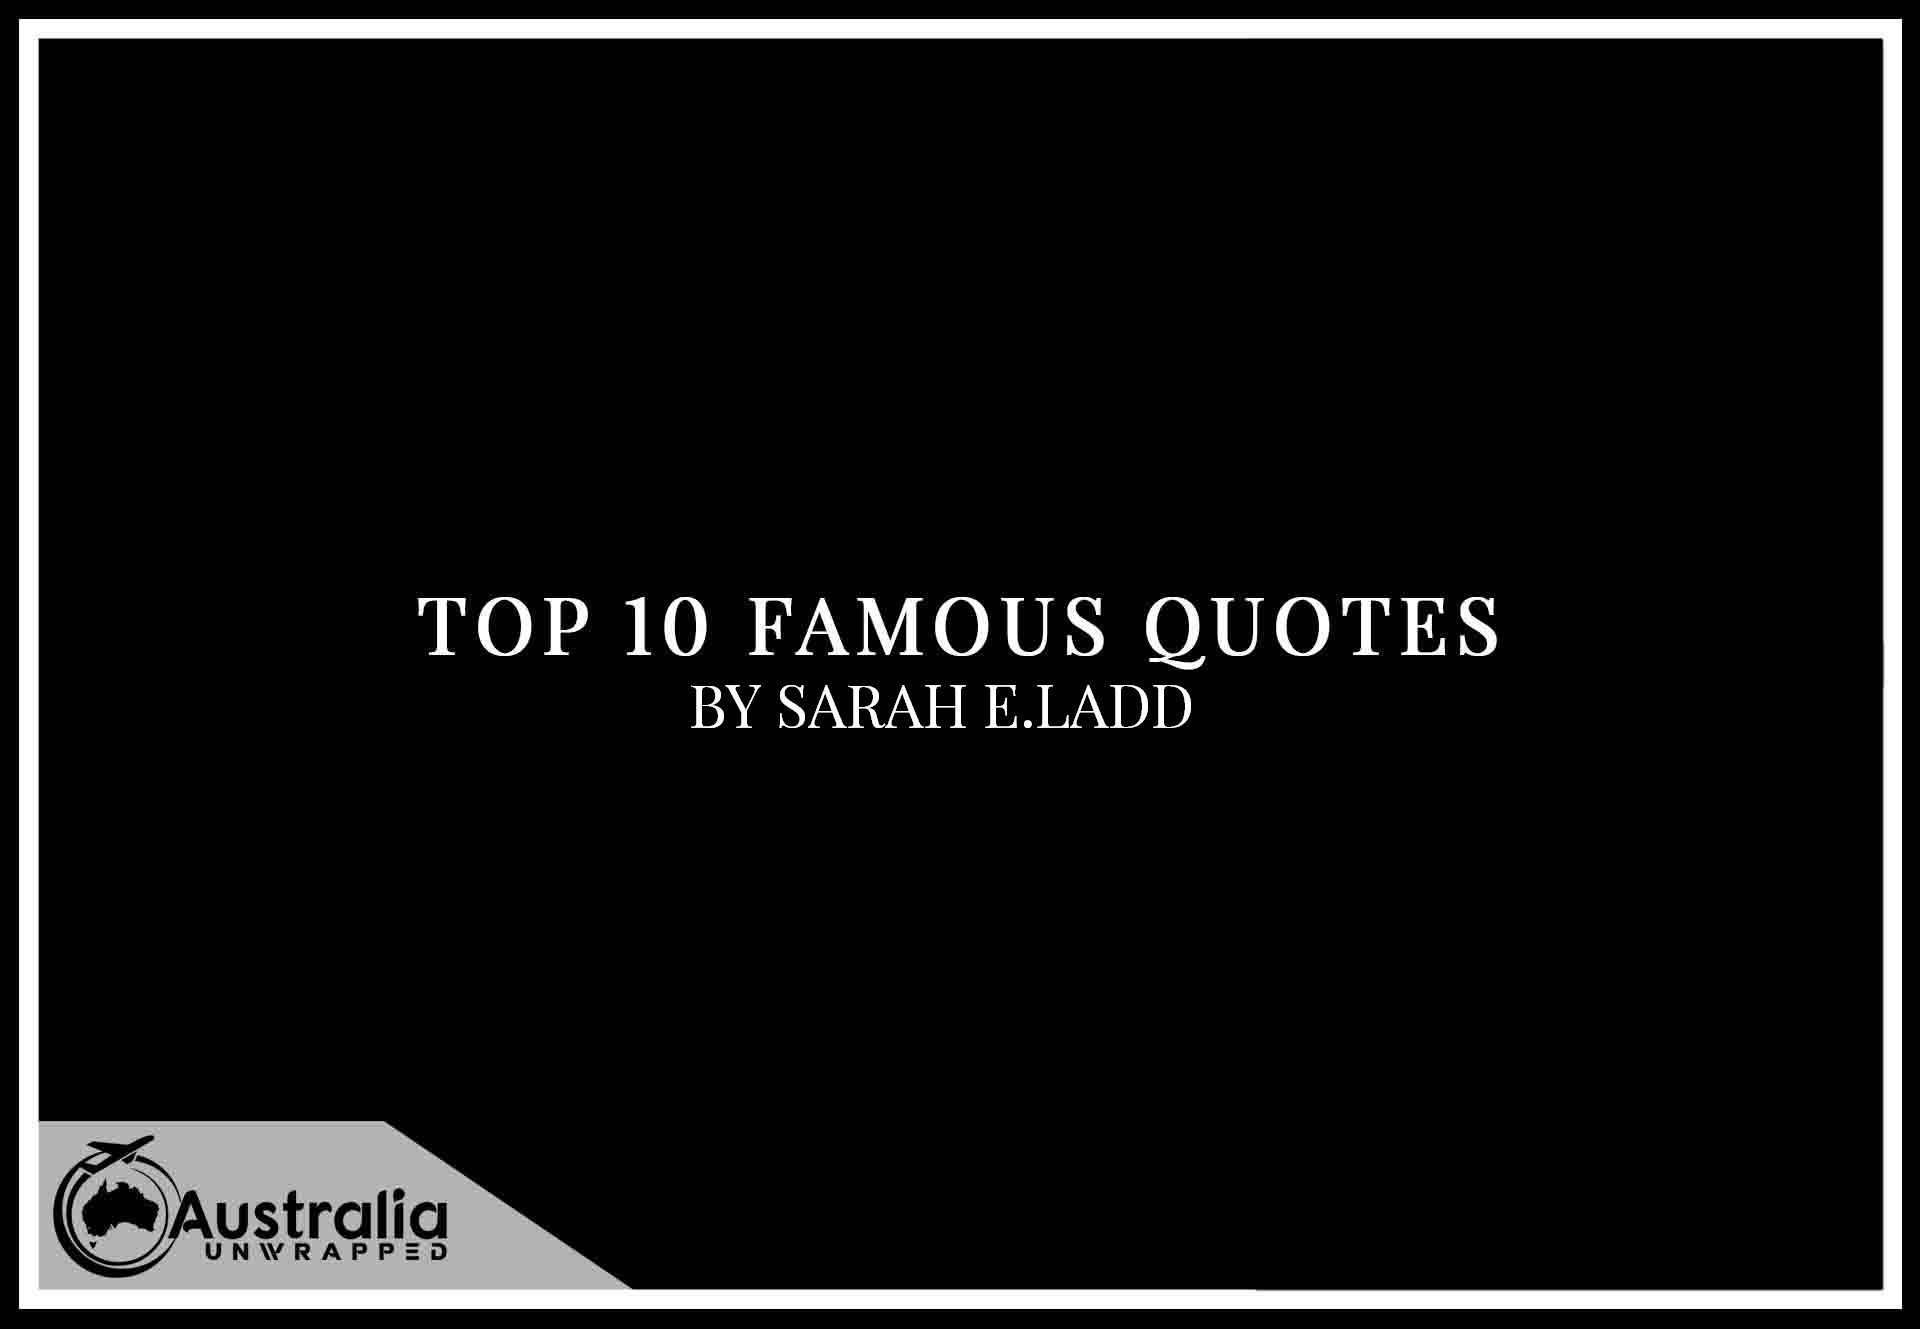 Top 10 Famous Quotes by Author Sarah E. Ladd